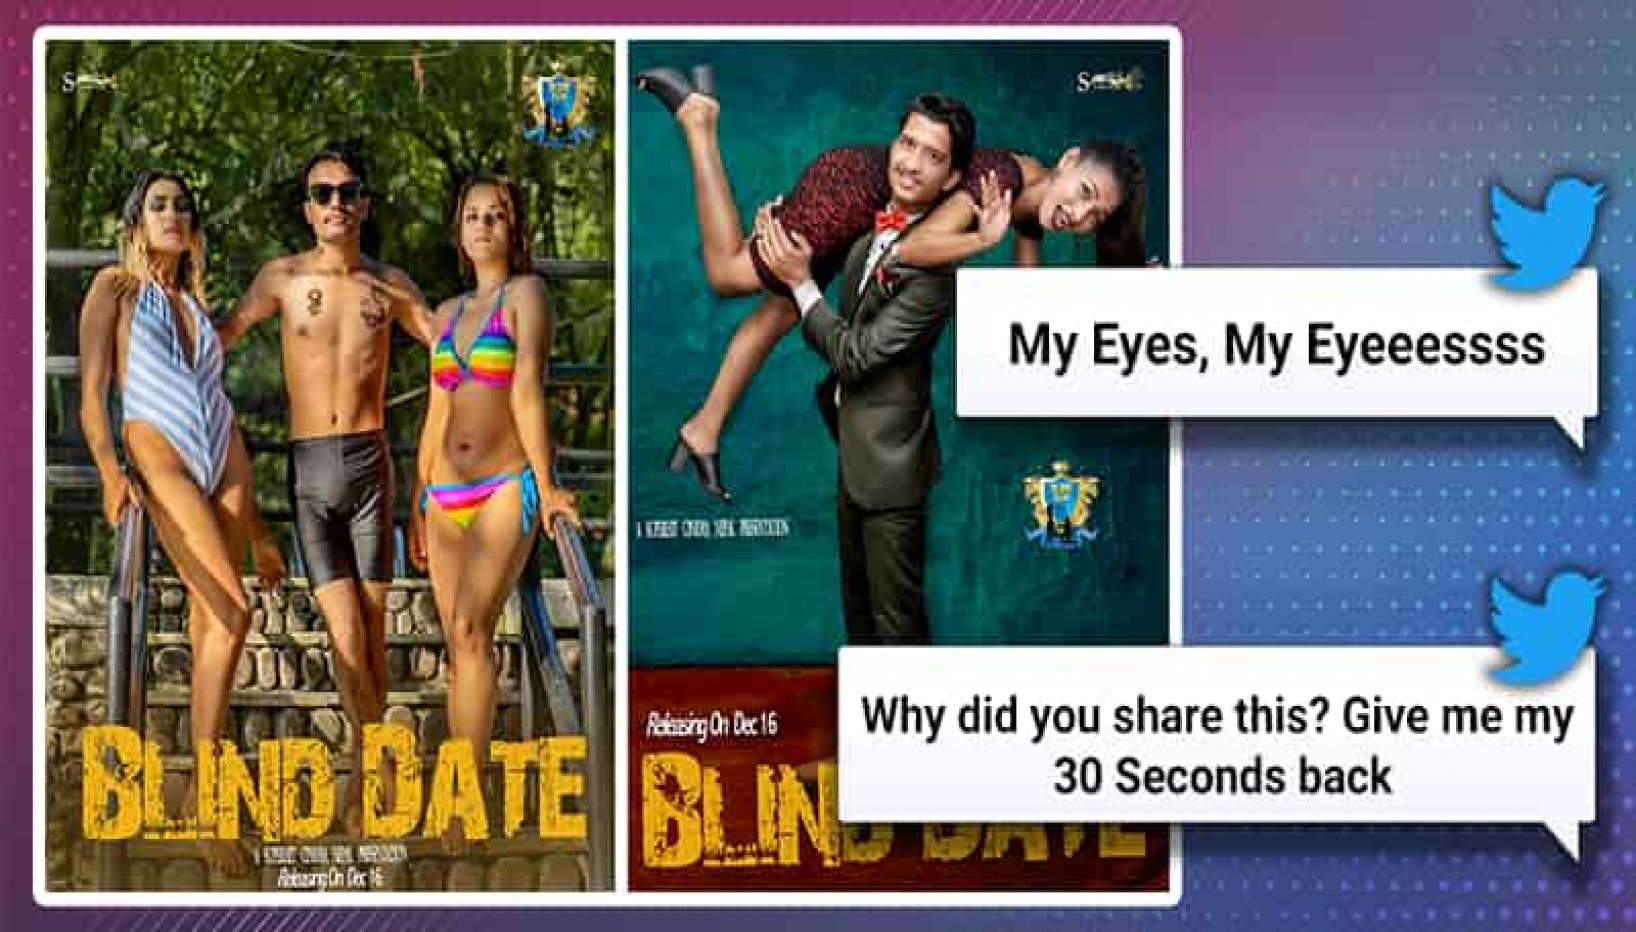 WATCH: Nepal's First Reality Dating Show 'Blind Date' Drops Its Trailer